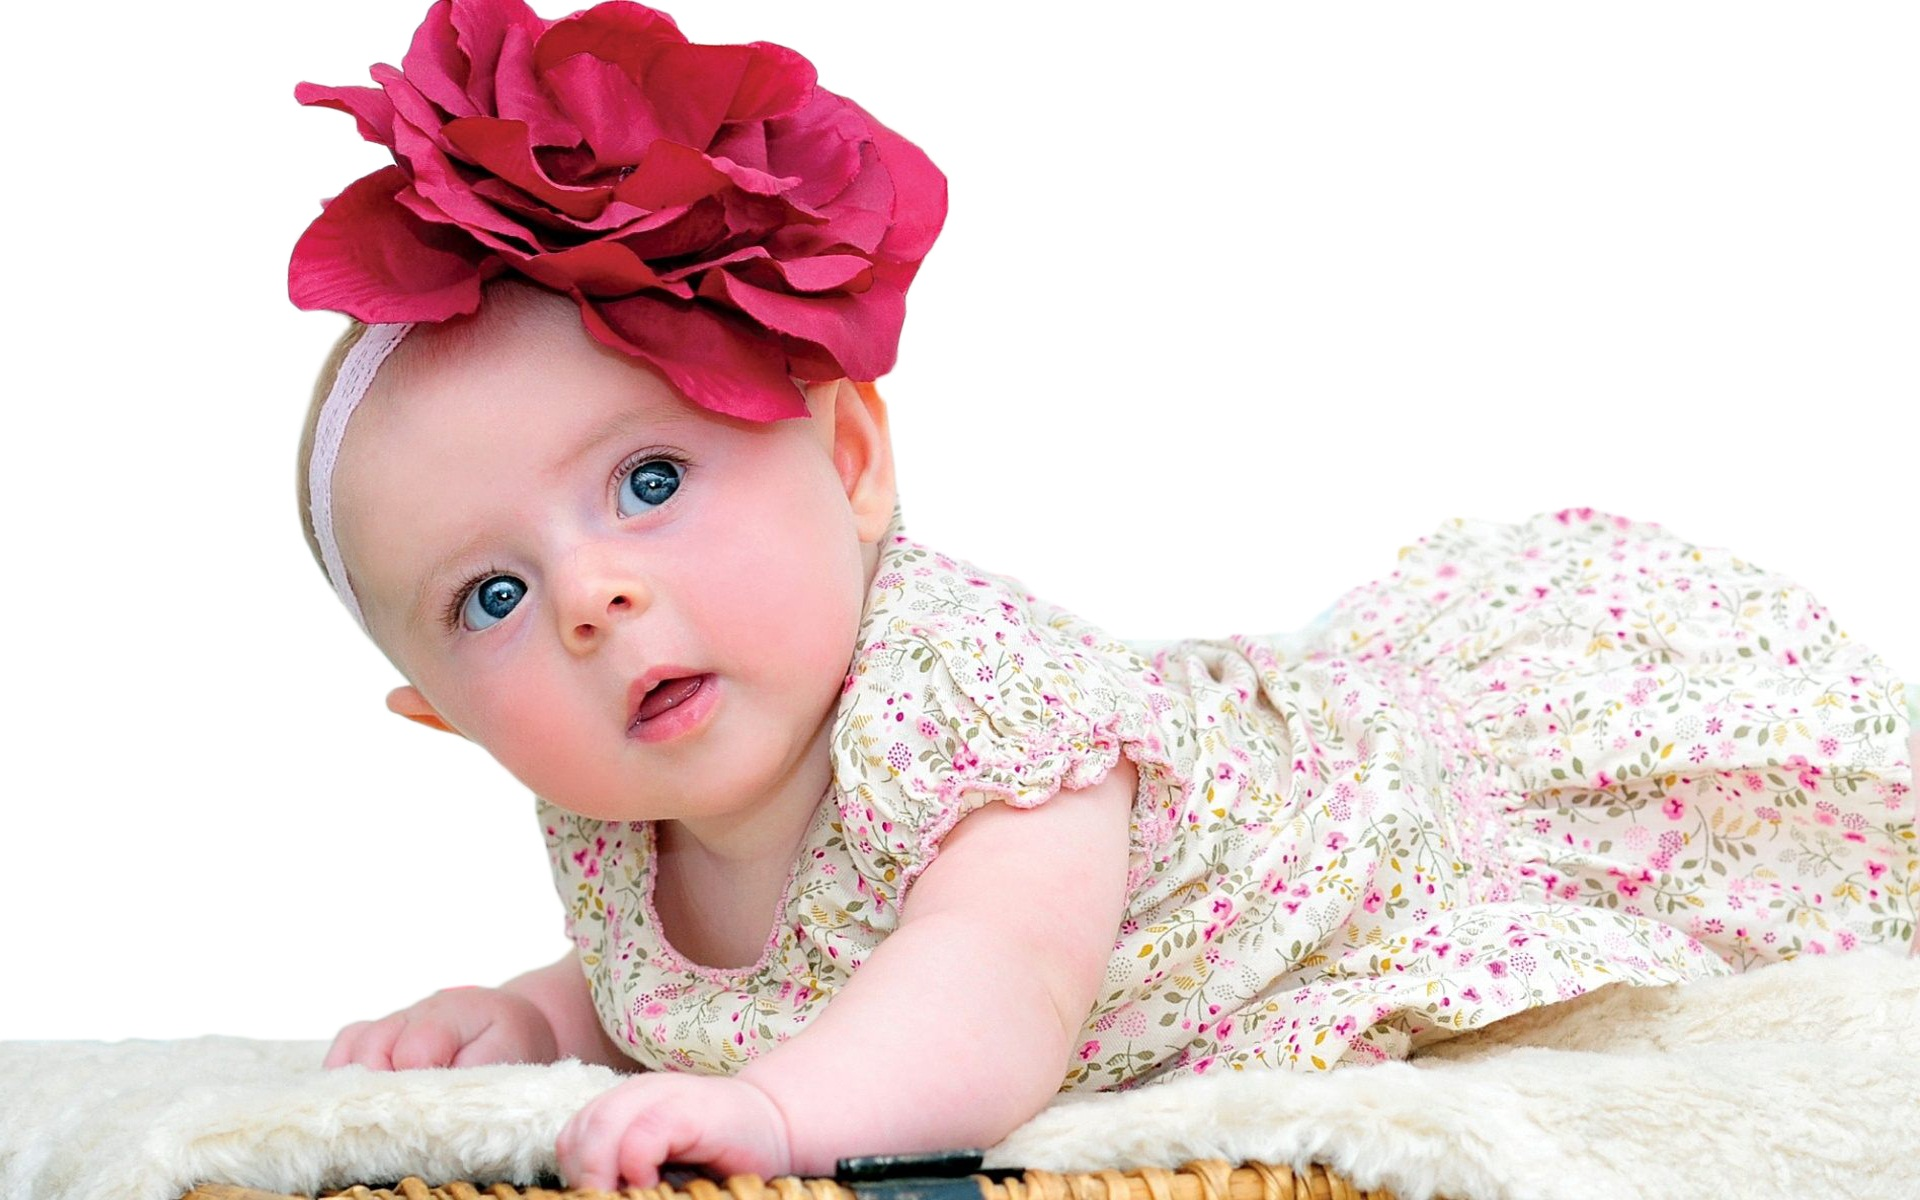 New Babies Photos Wallpapers (34 Wallpapers) – Adorable ...